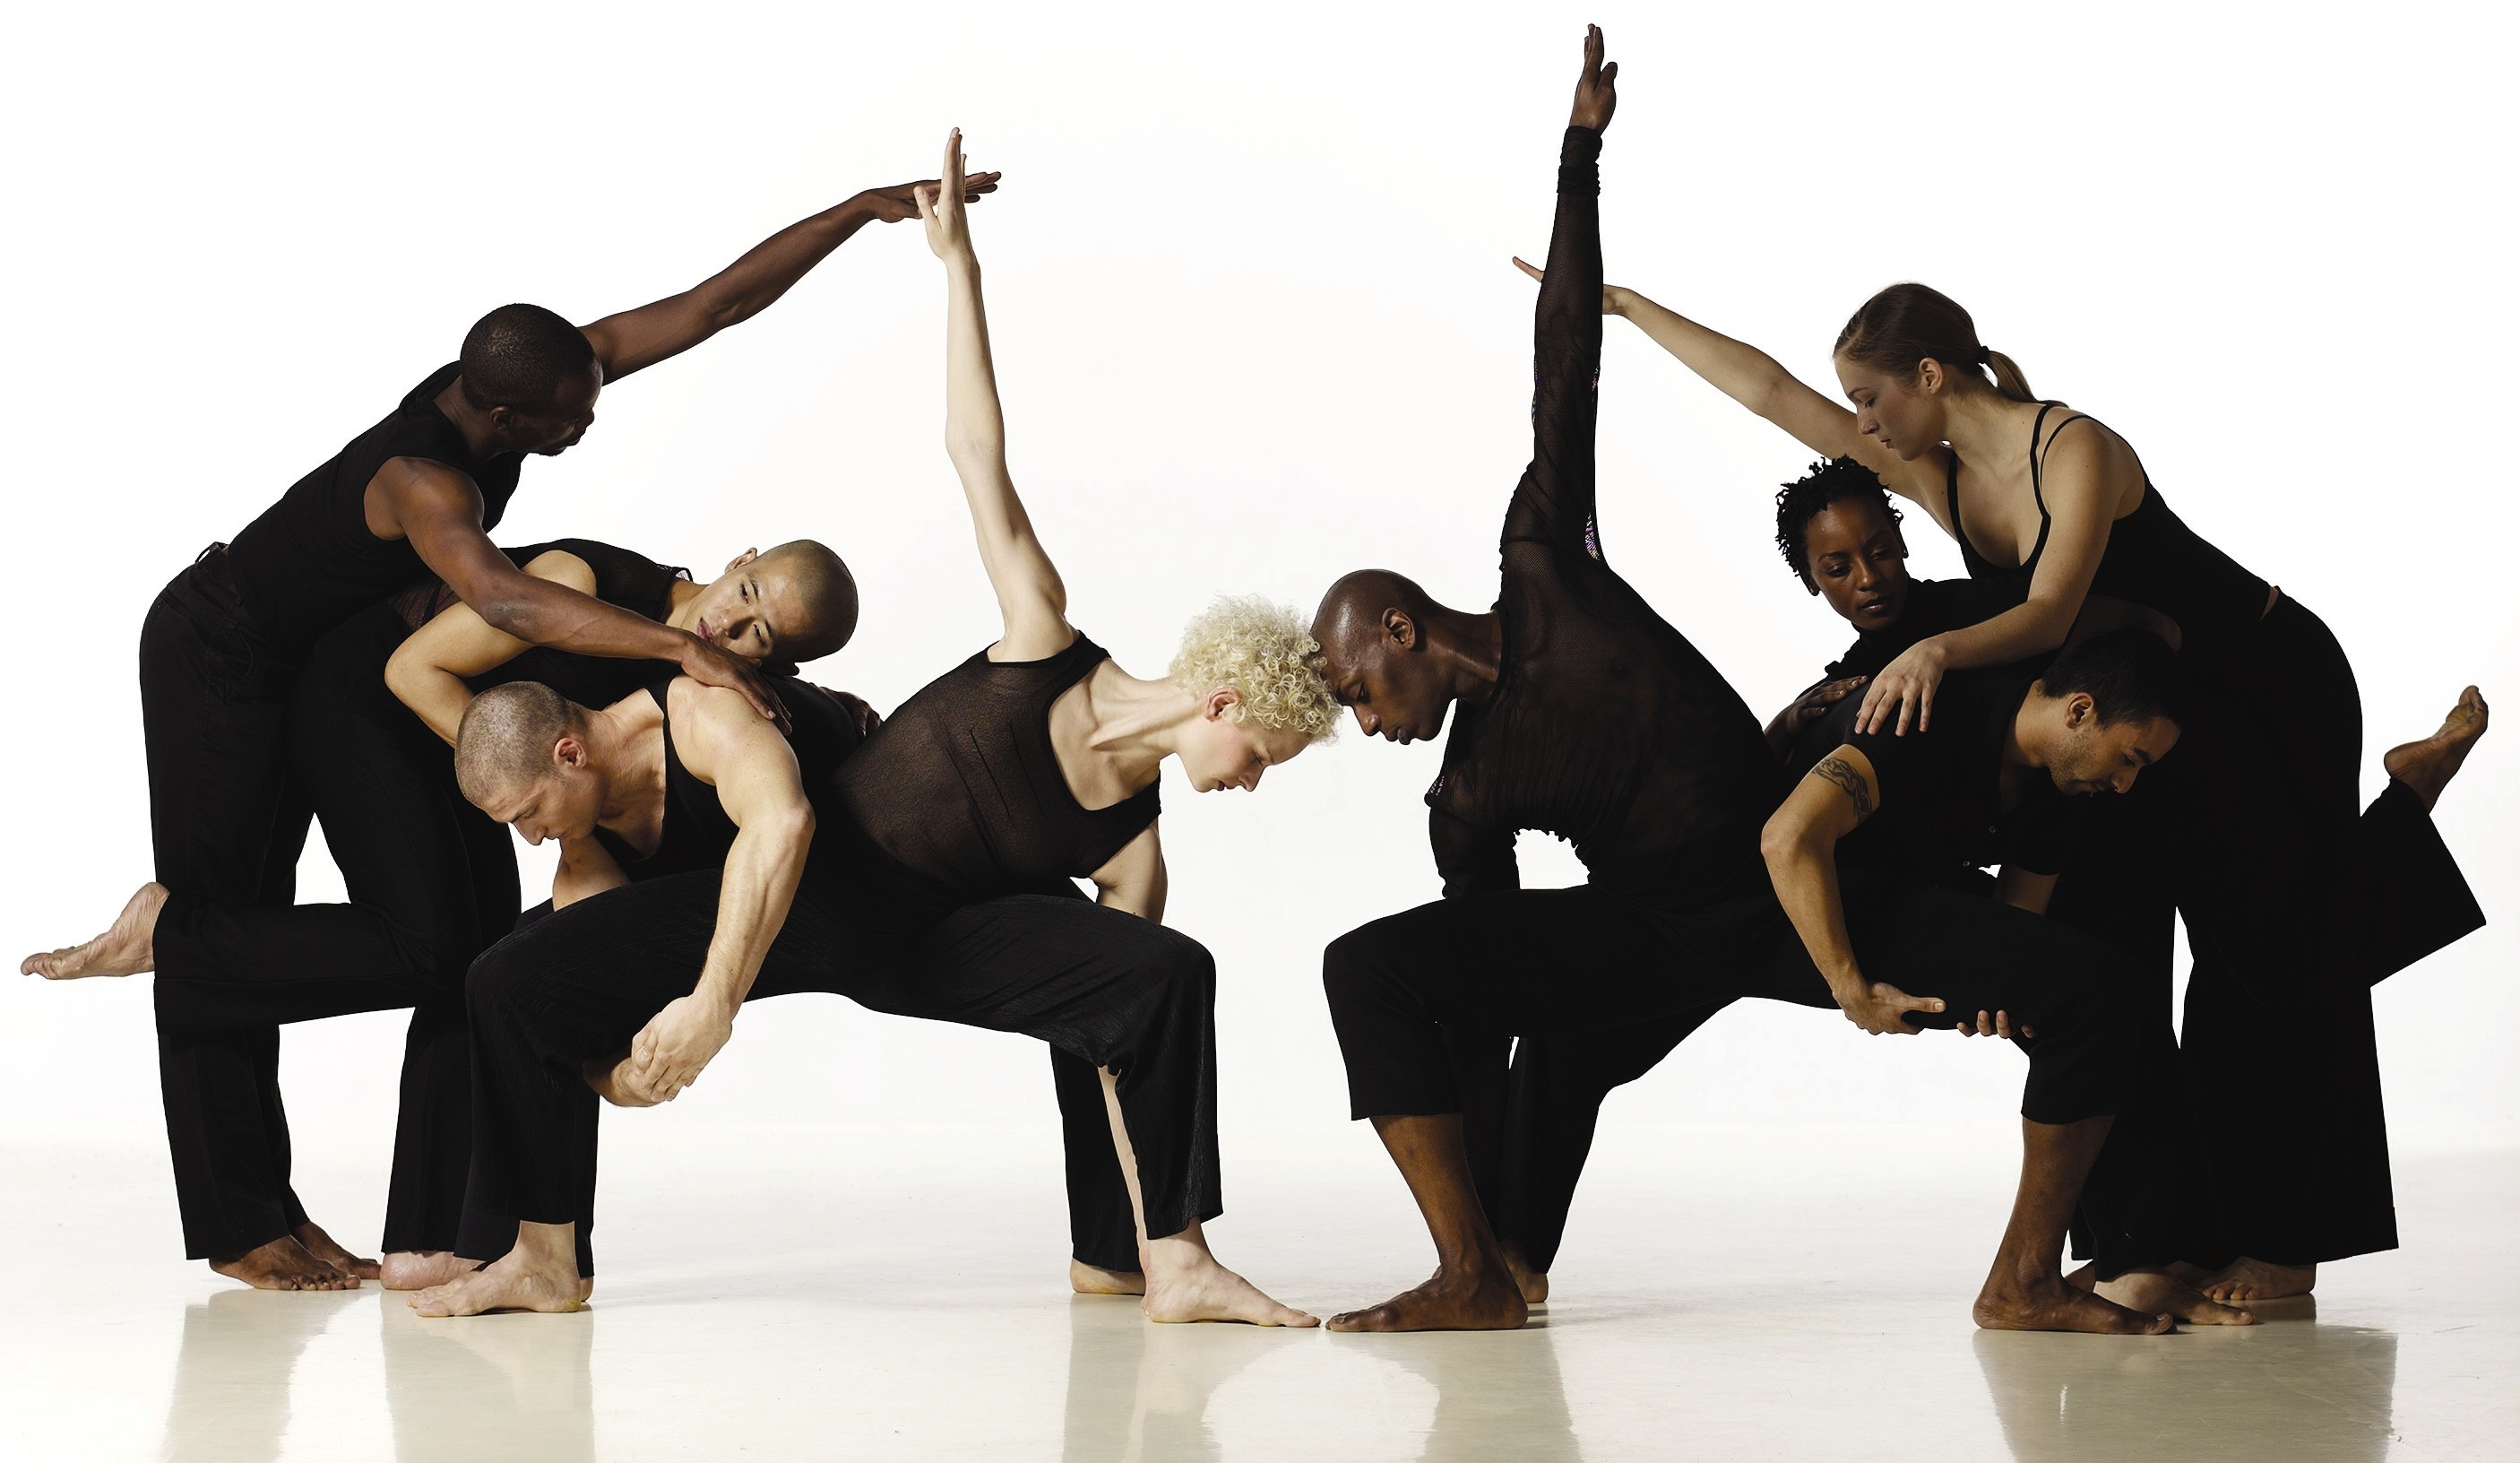 Dance Group Images 84